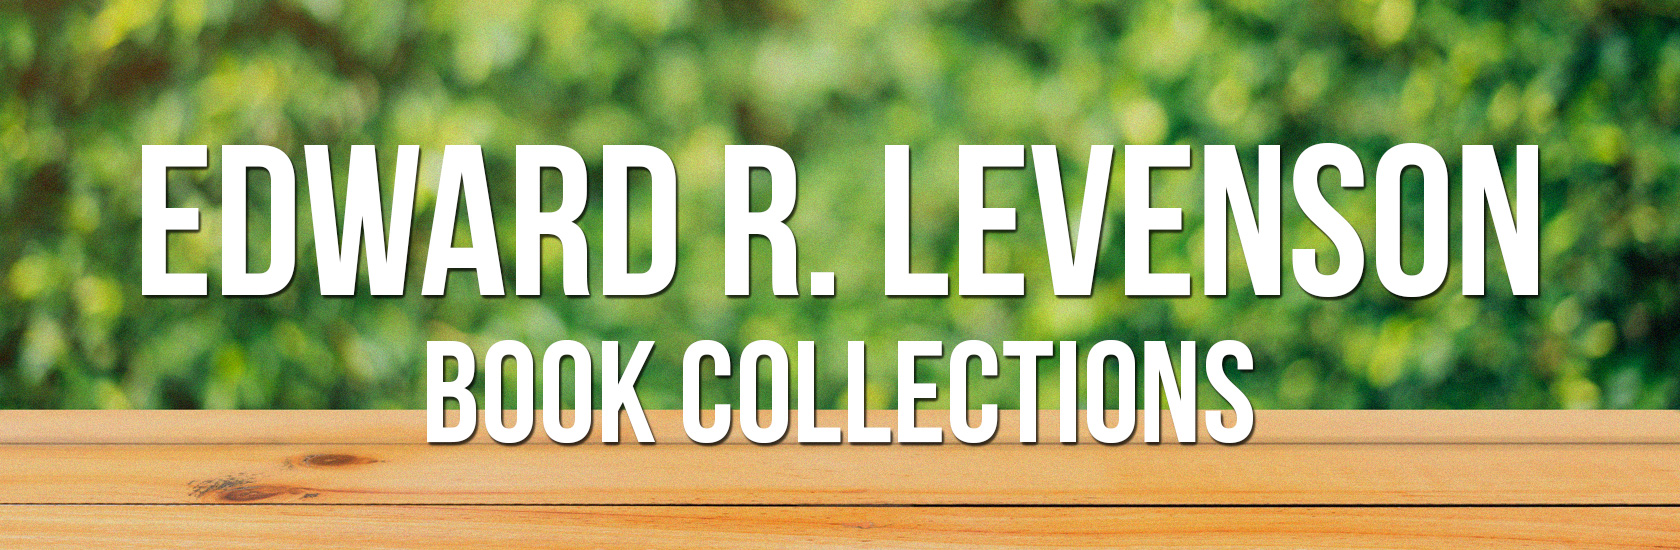 Edward R. Levenson Book Collections